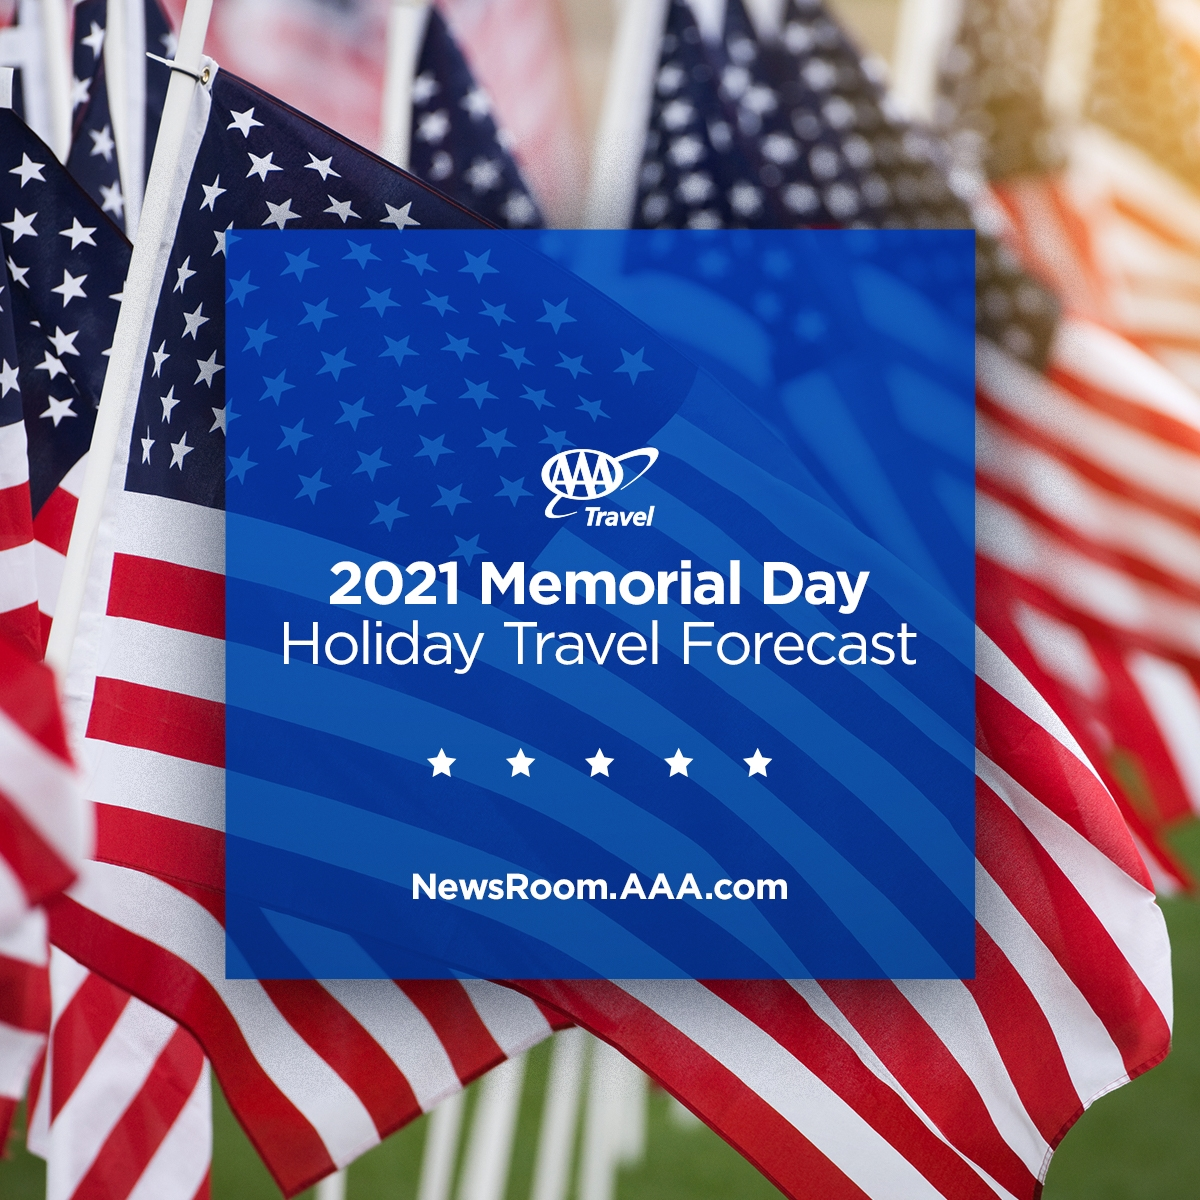 21-1114-TRV-Memorial Day Holiday Travel Forecast Graphics1_1200x1200